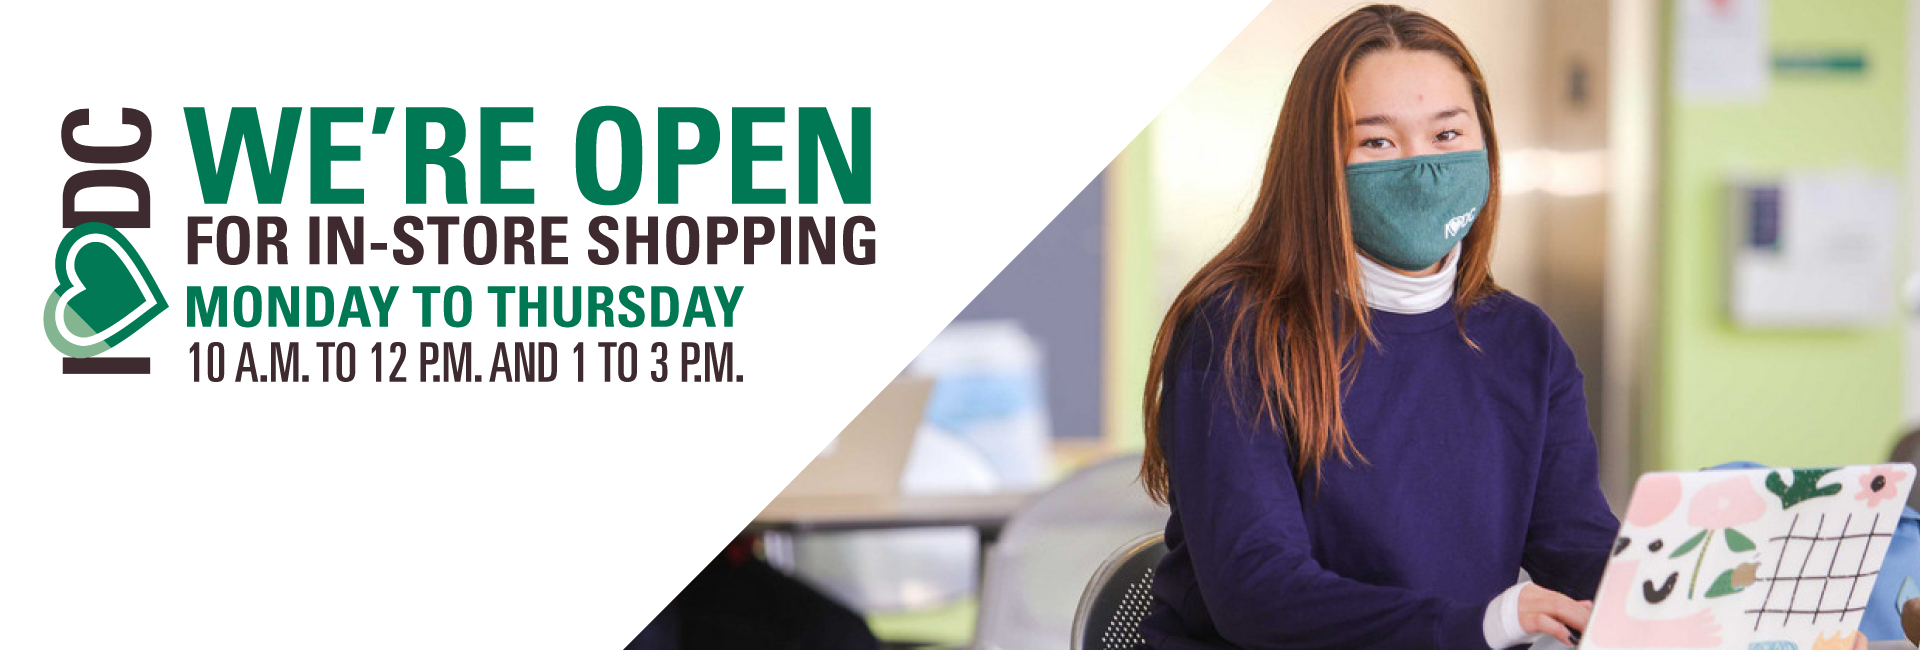 Campus store open for in-store shopping